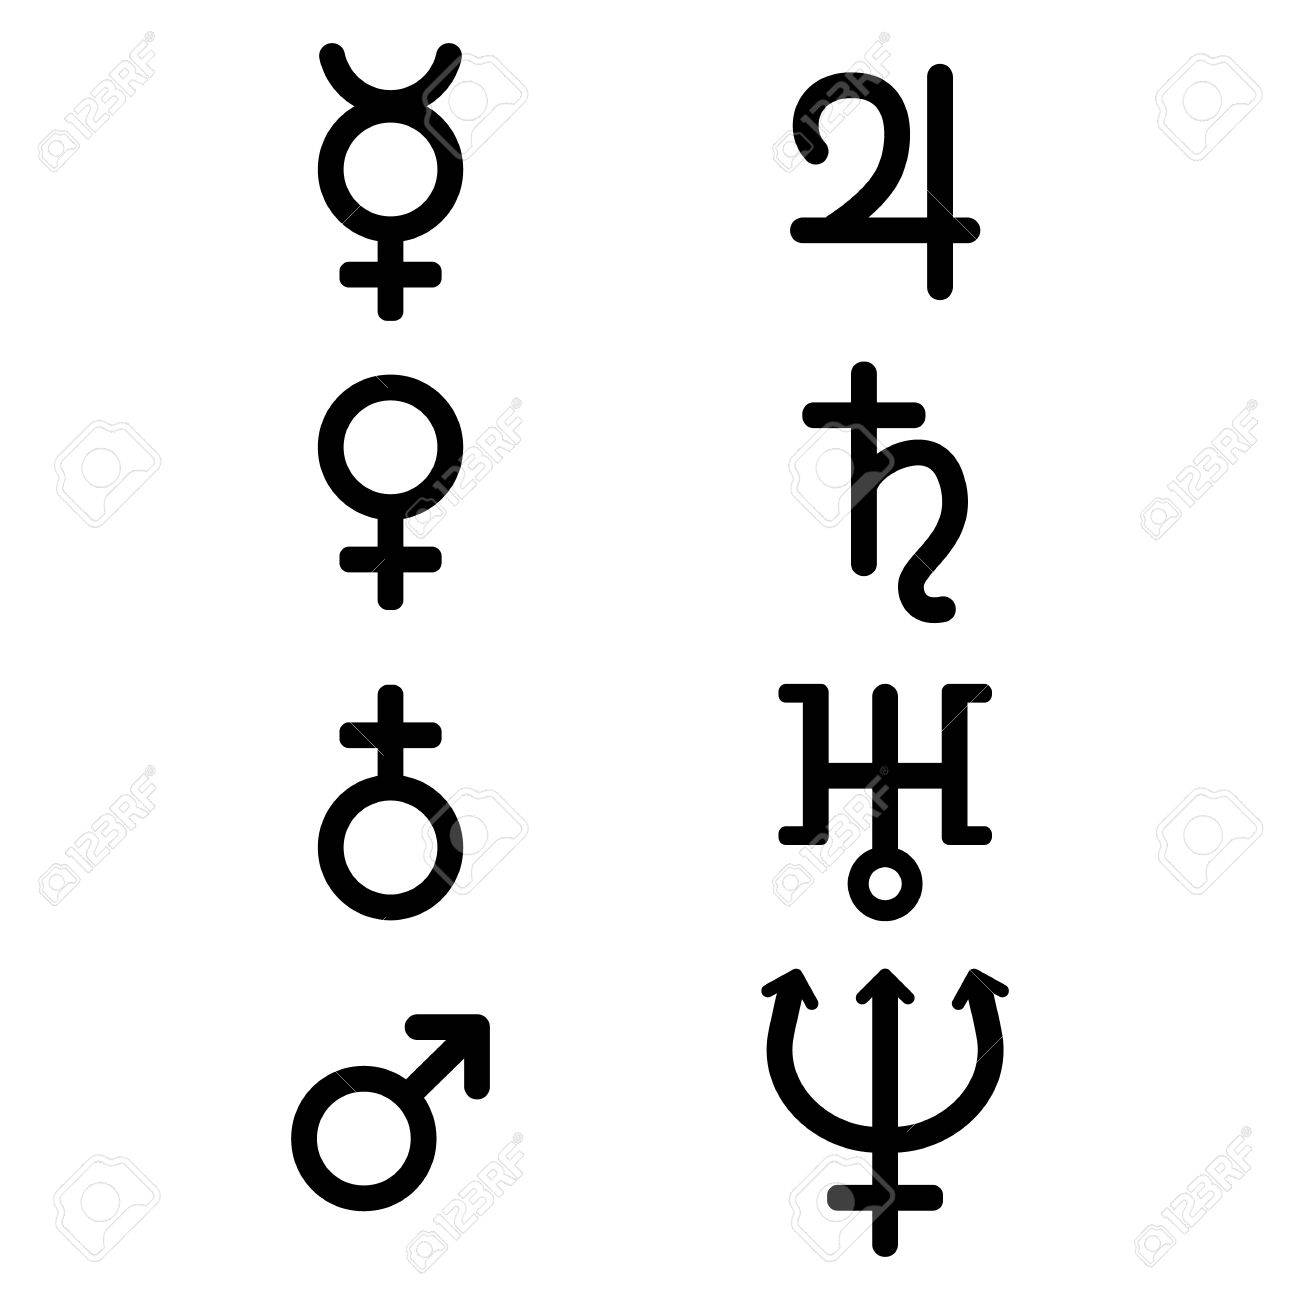 Planet Astrological Symbols And Signs Set Zodiac And Astrology